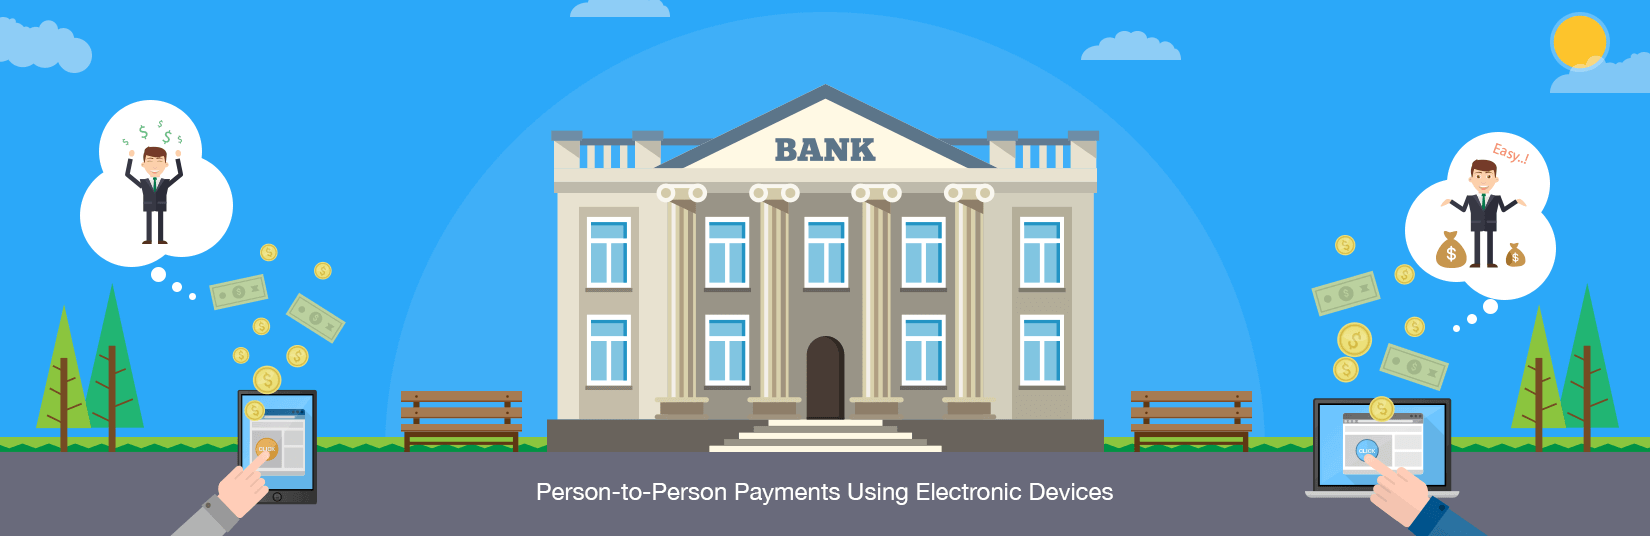 Person-to-Person-Payments